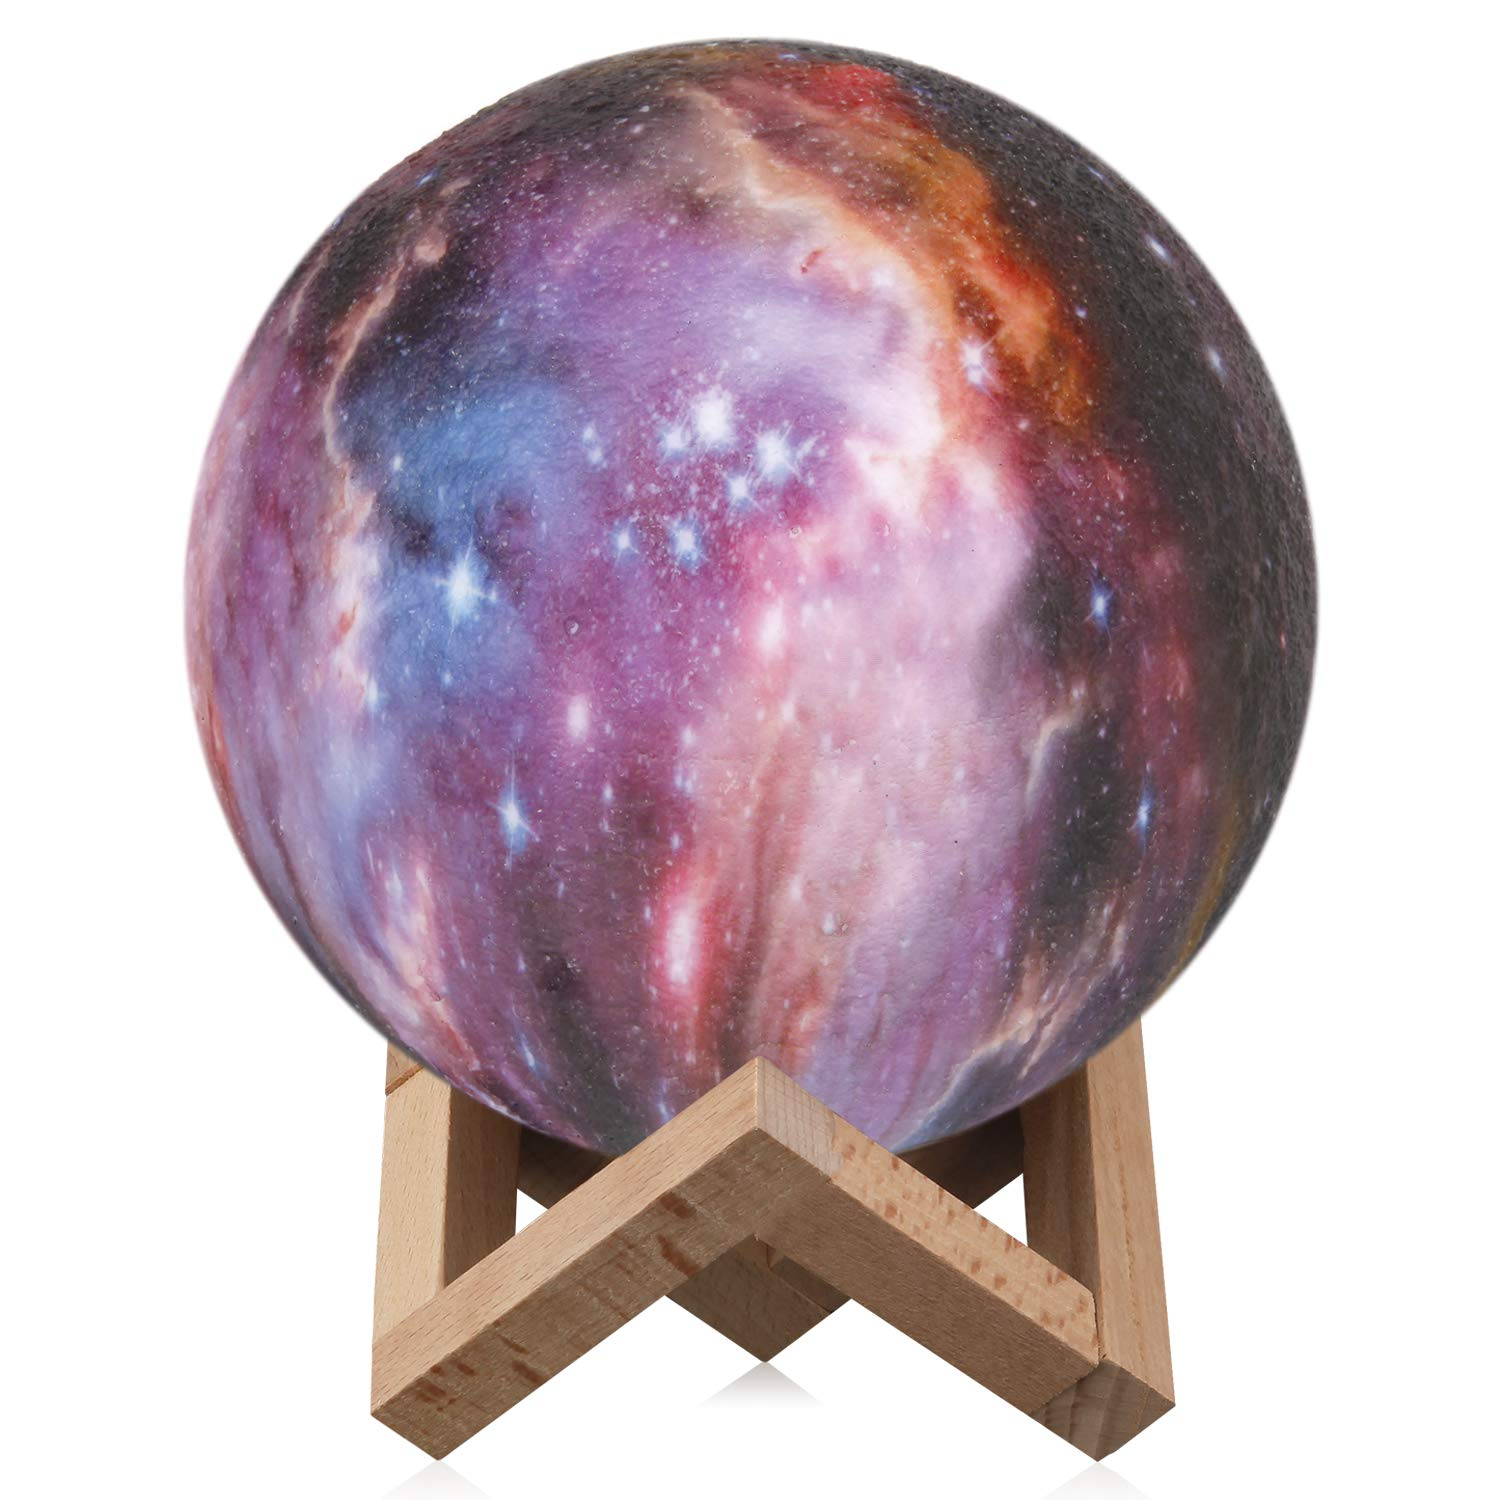 Space Night Light,Elstey 3 Colors 3D Printing Spherical Moon Lamp with Stand,5.9 inch Glowing Decor Moon Light for Baby Kids Lover Birthday Party Gifts